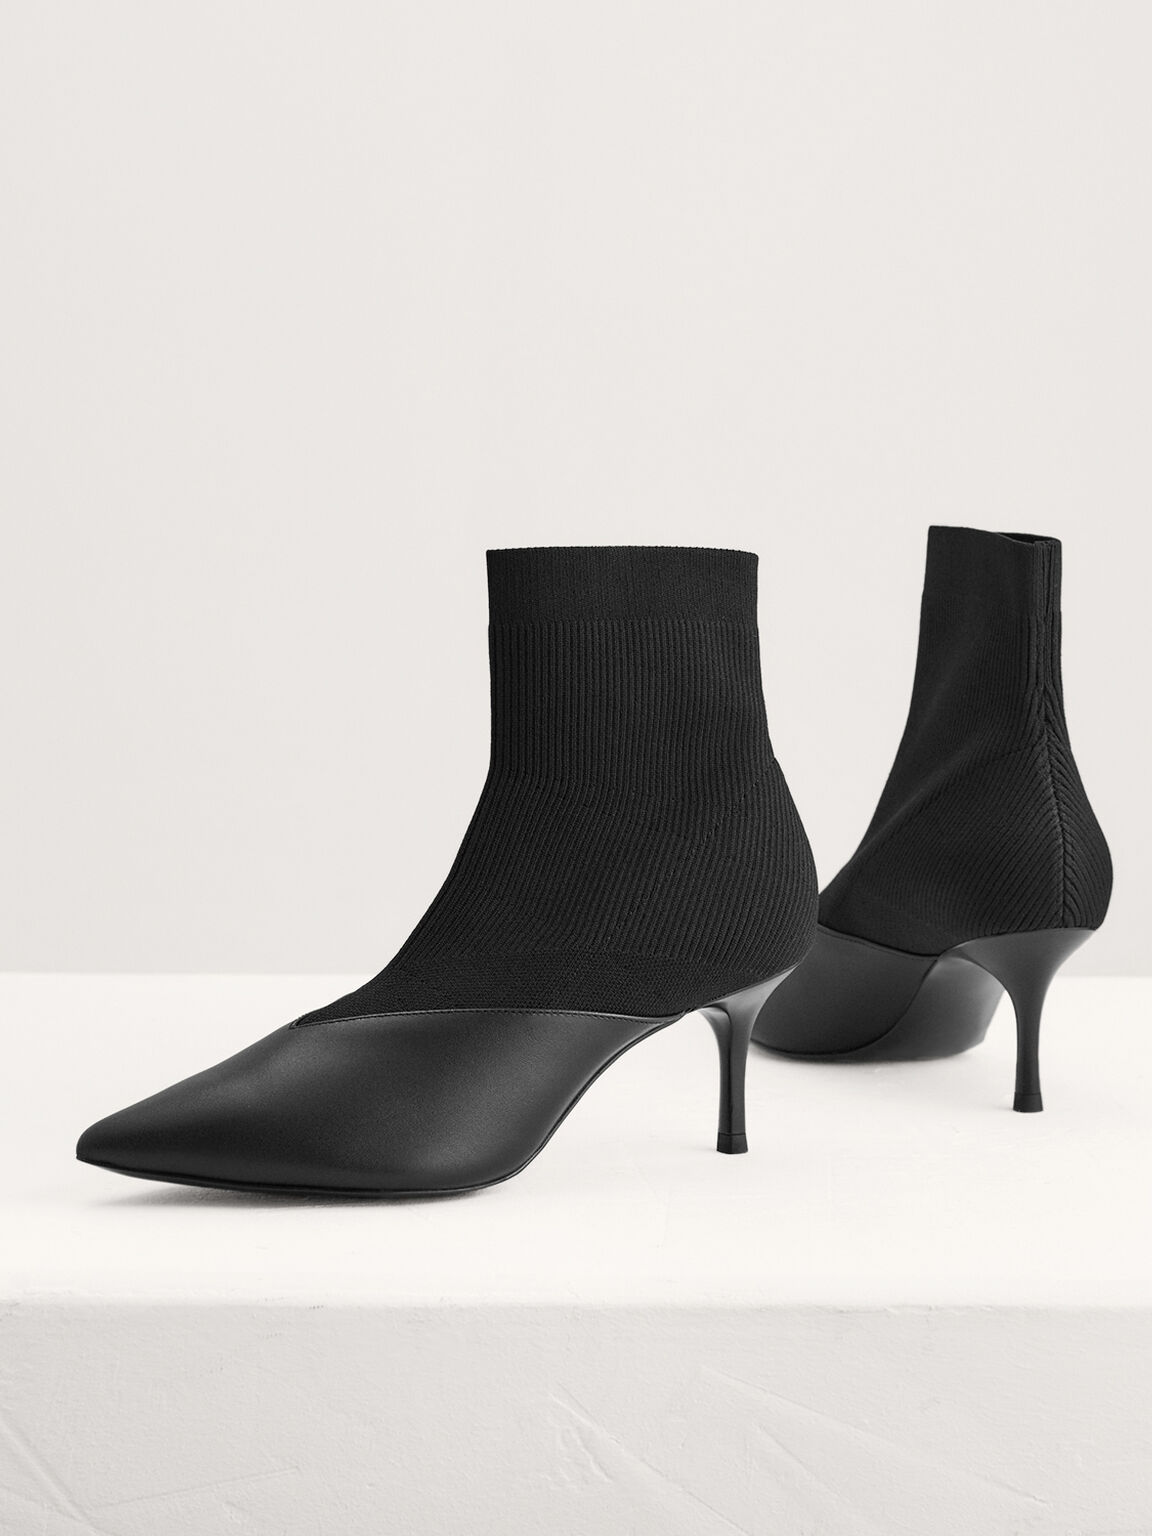 Paneled Leather And Knit Sock Boots, Black, hi-res